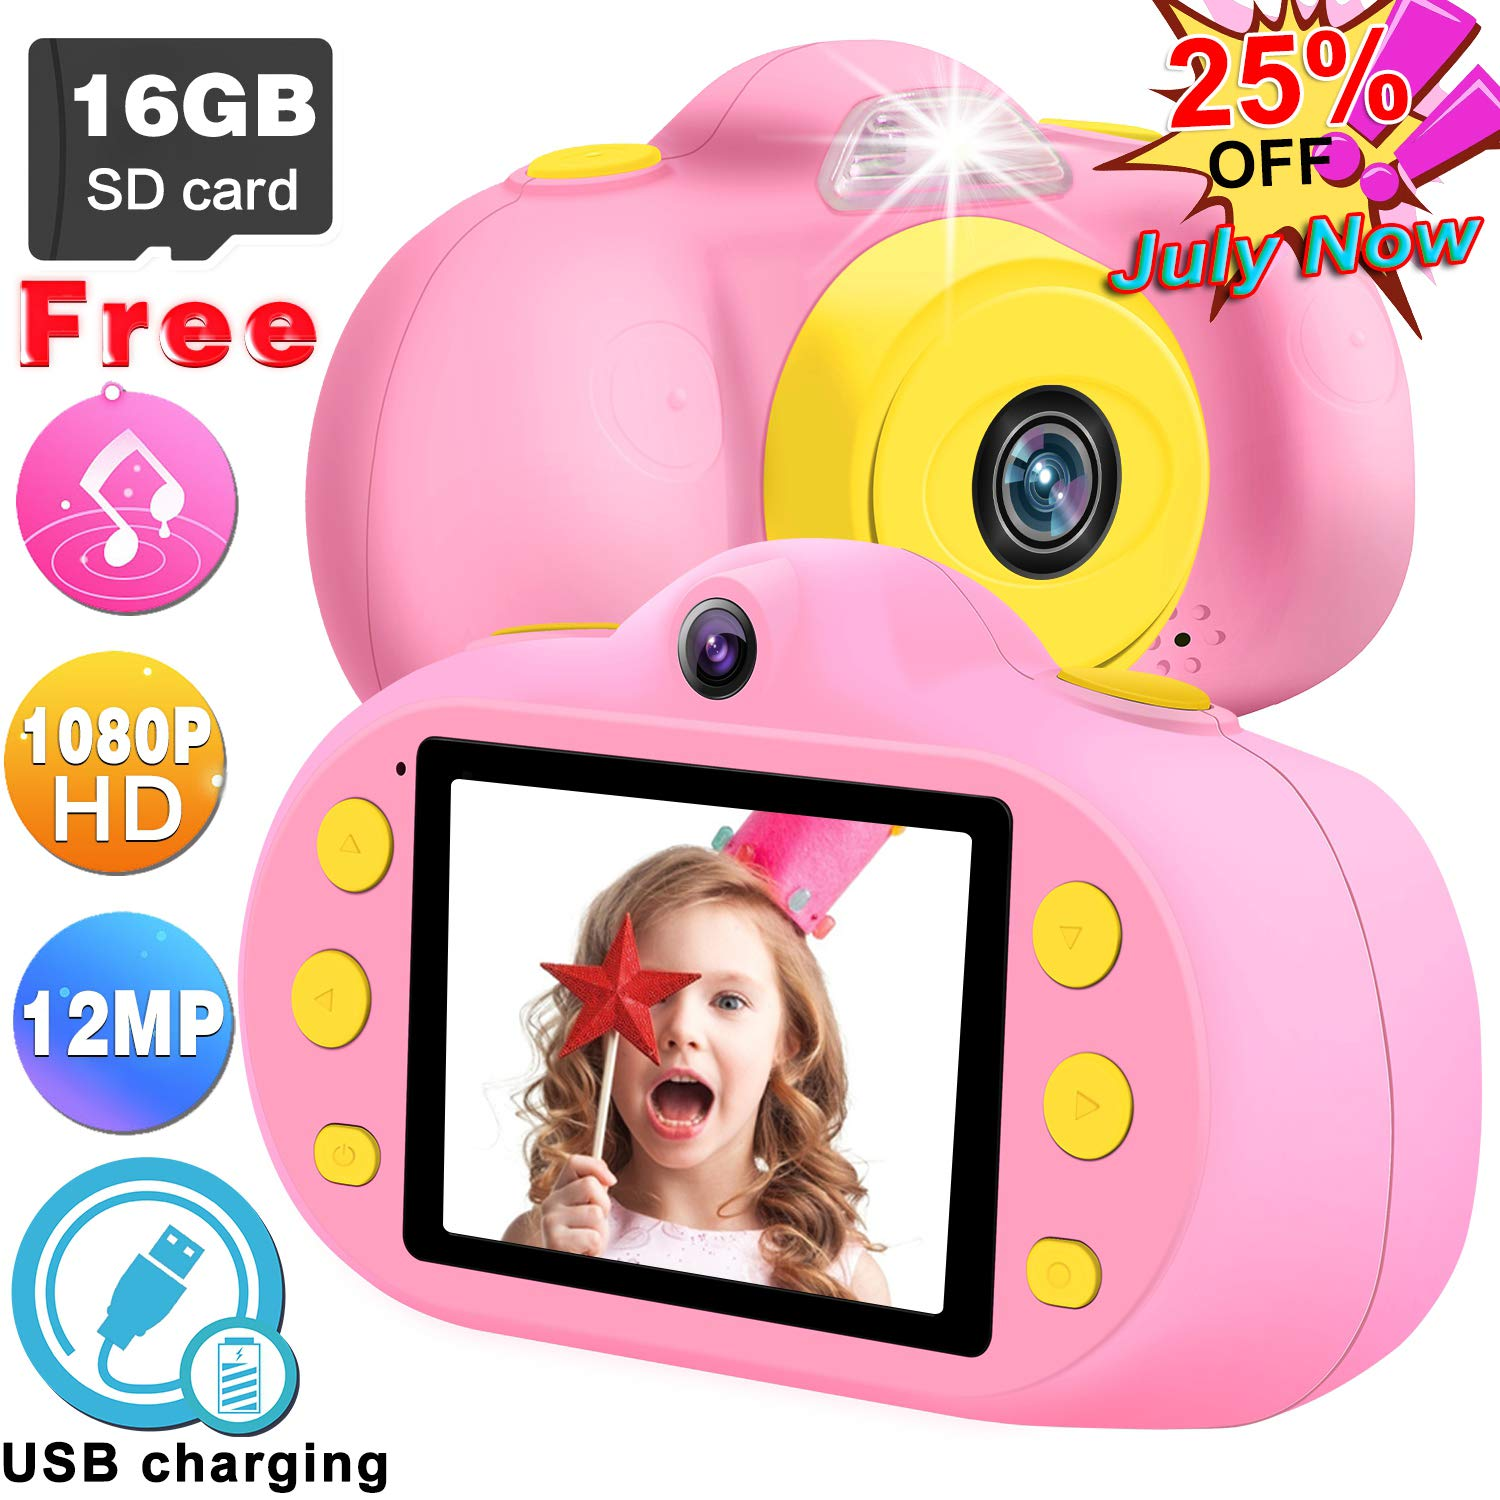 GBD [NEW] Kids Camera Toys for Boys Girls,12MP HD 1080P Selfie Video Camera with MP3 Player Games DUAL Lens, 2.4'' Digital Camcorder Recorder Back to School Birthday Gift,(Free 16GB Memory Card) (Pink) by GBD (Image #1)